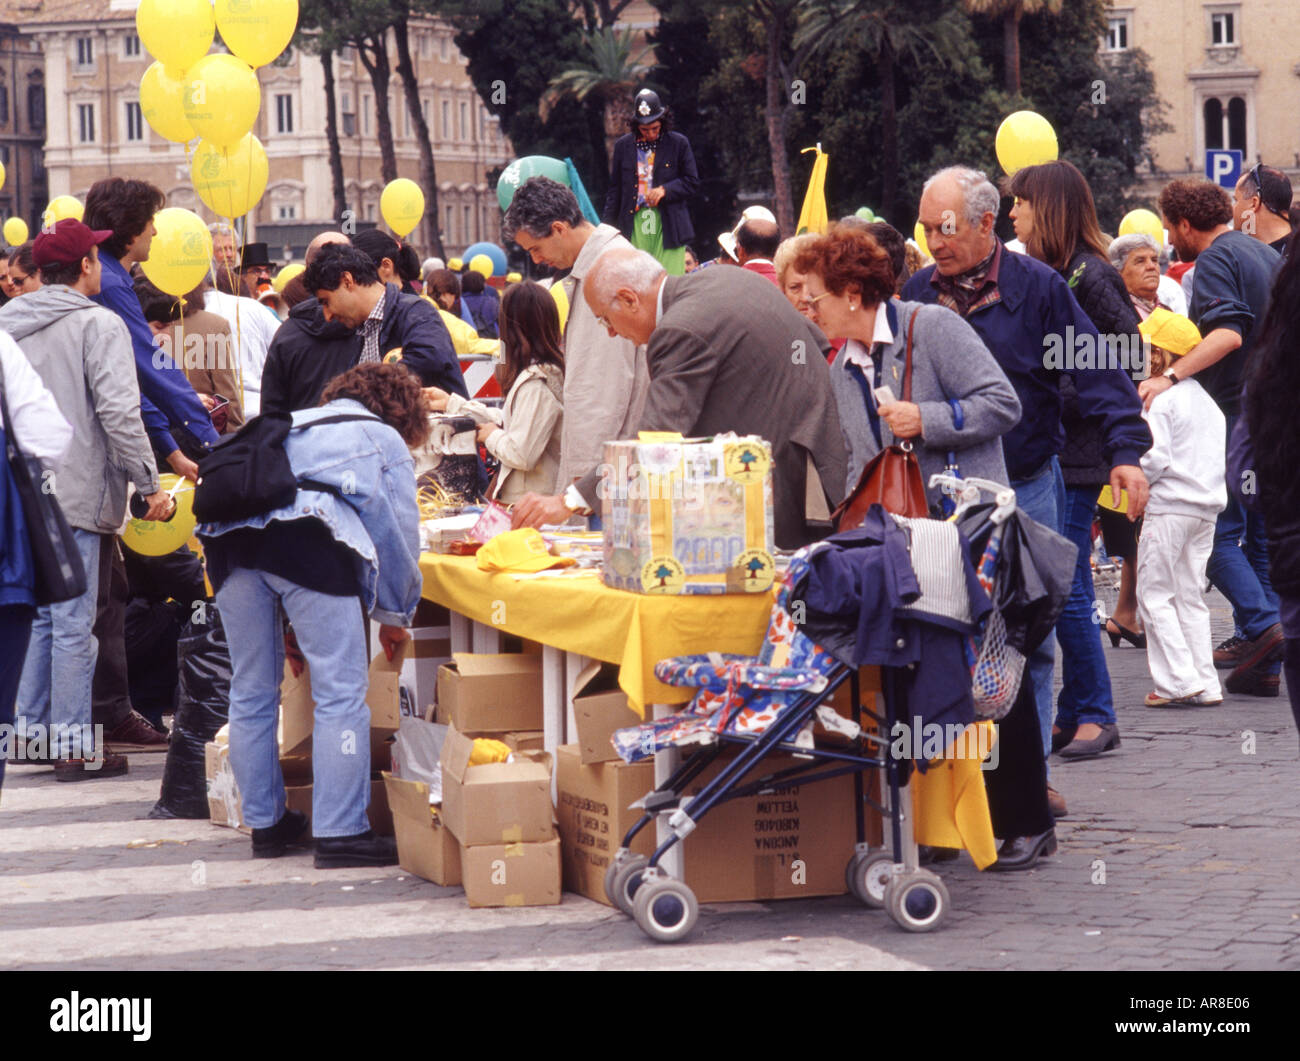 POLITICAL RALLY AND FUND RAISING EVENT ROME ITALY - Stock Image